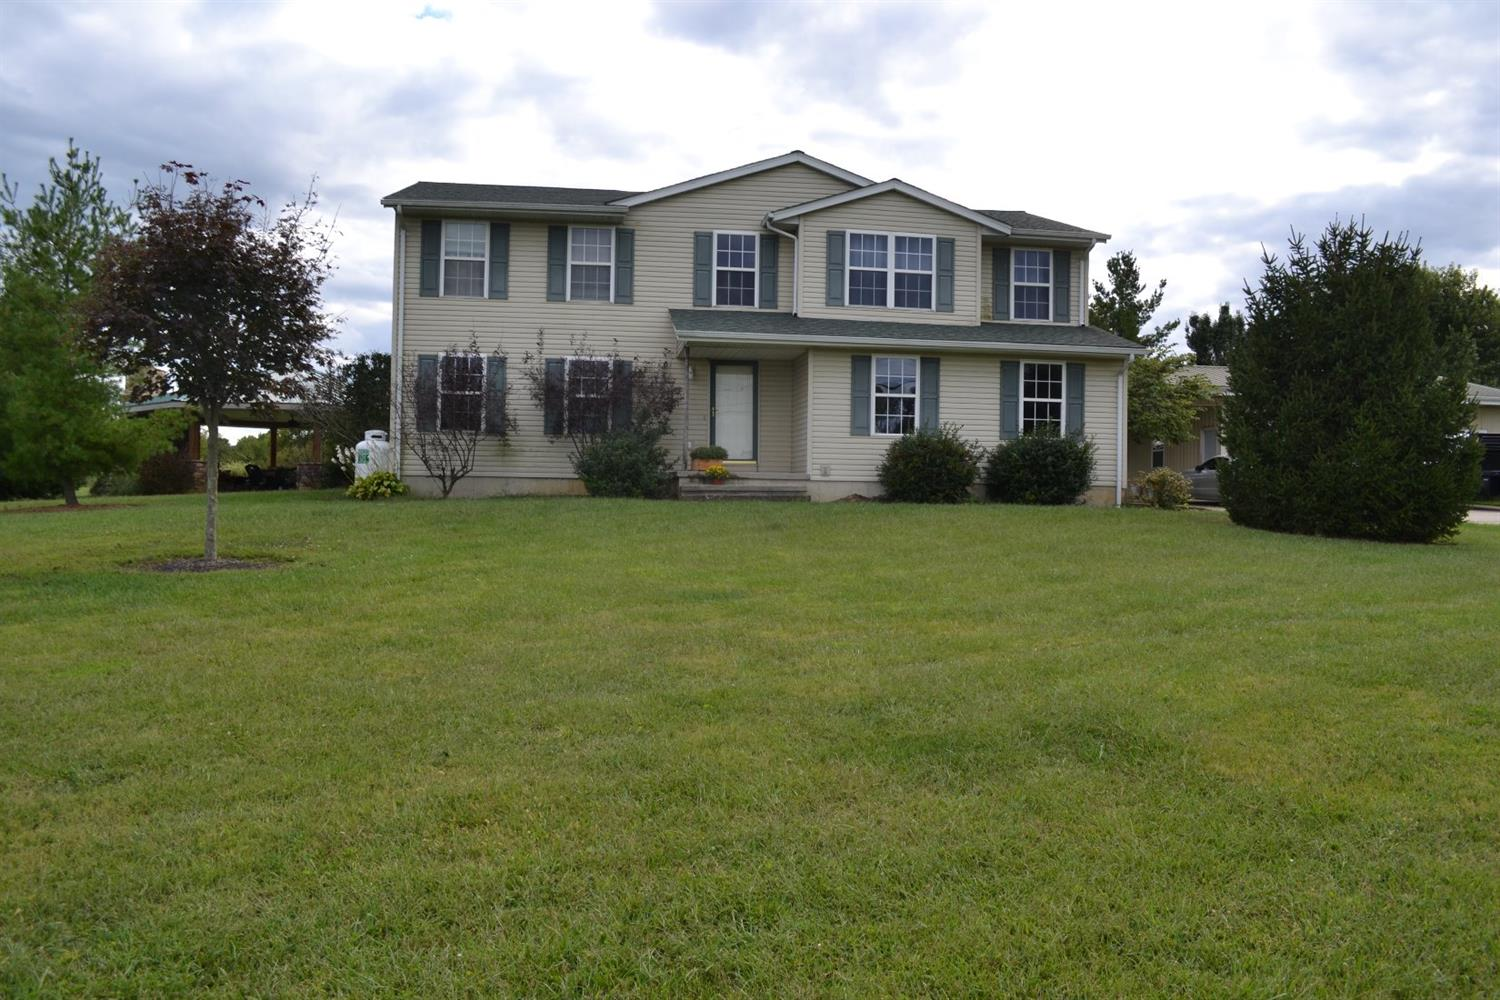 8148 St Rt 125 Jefferson Twp, OH